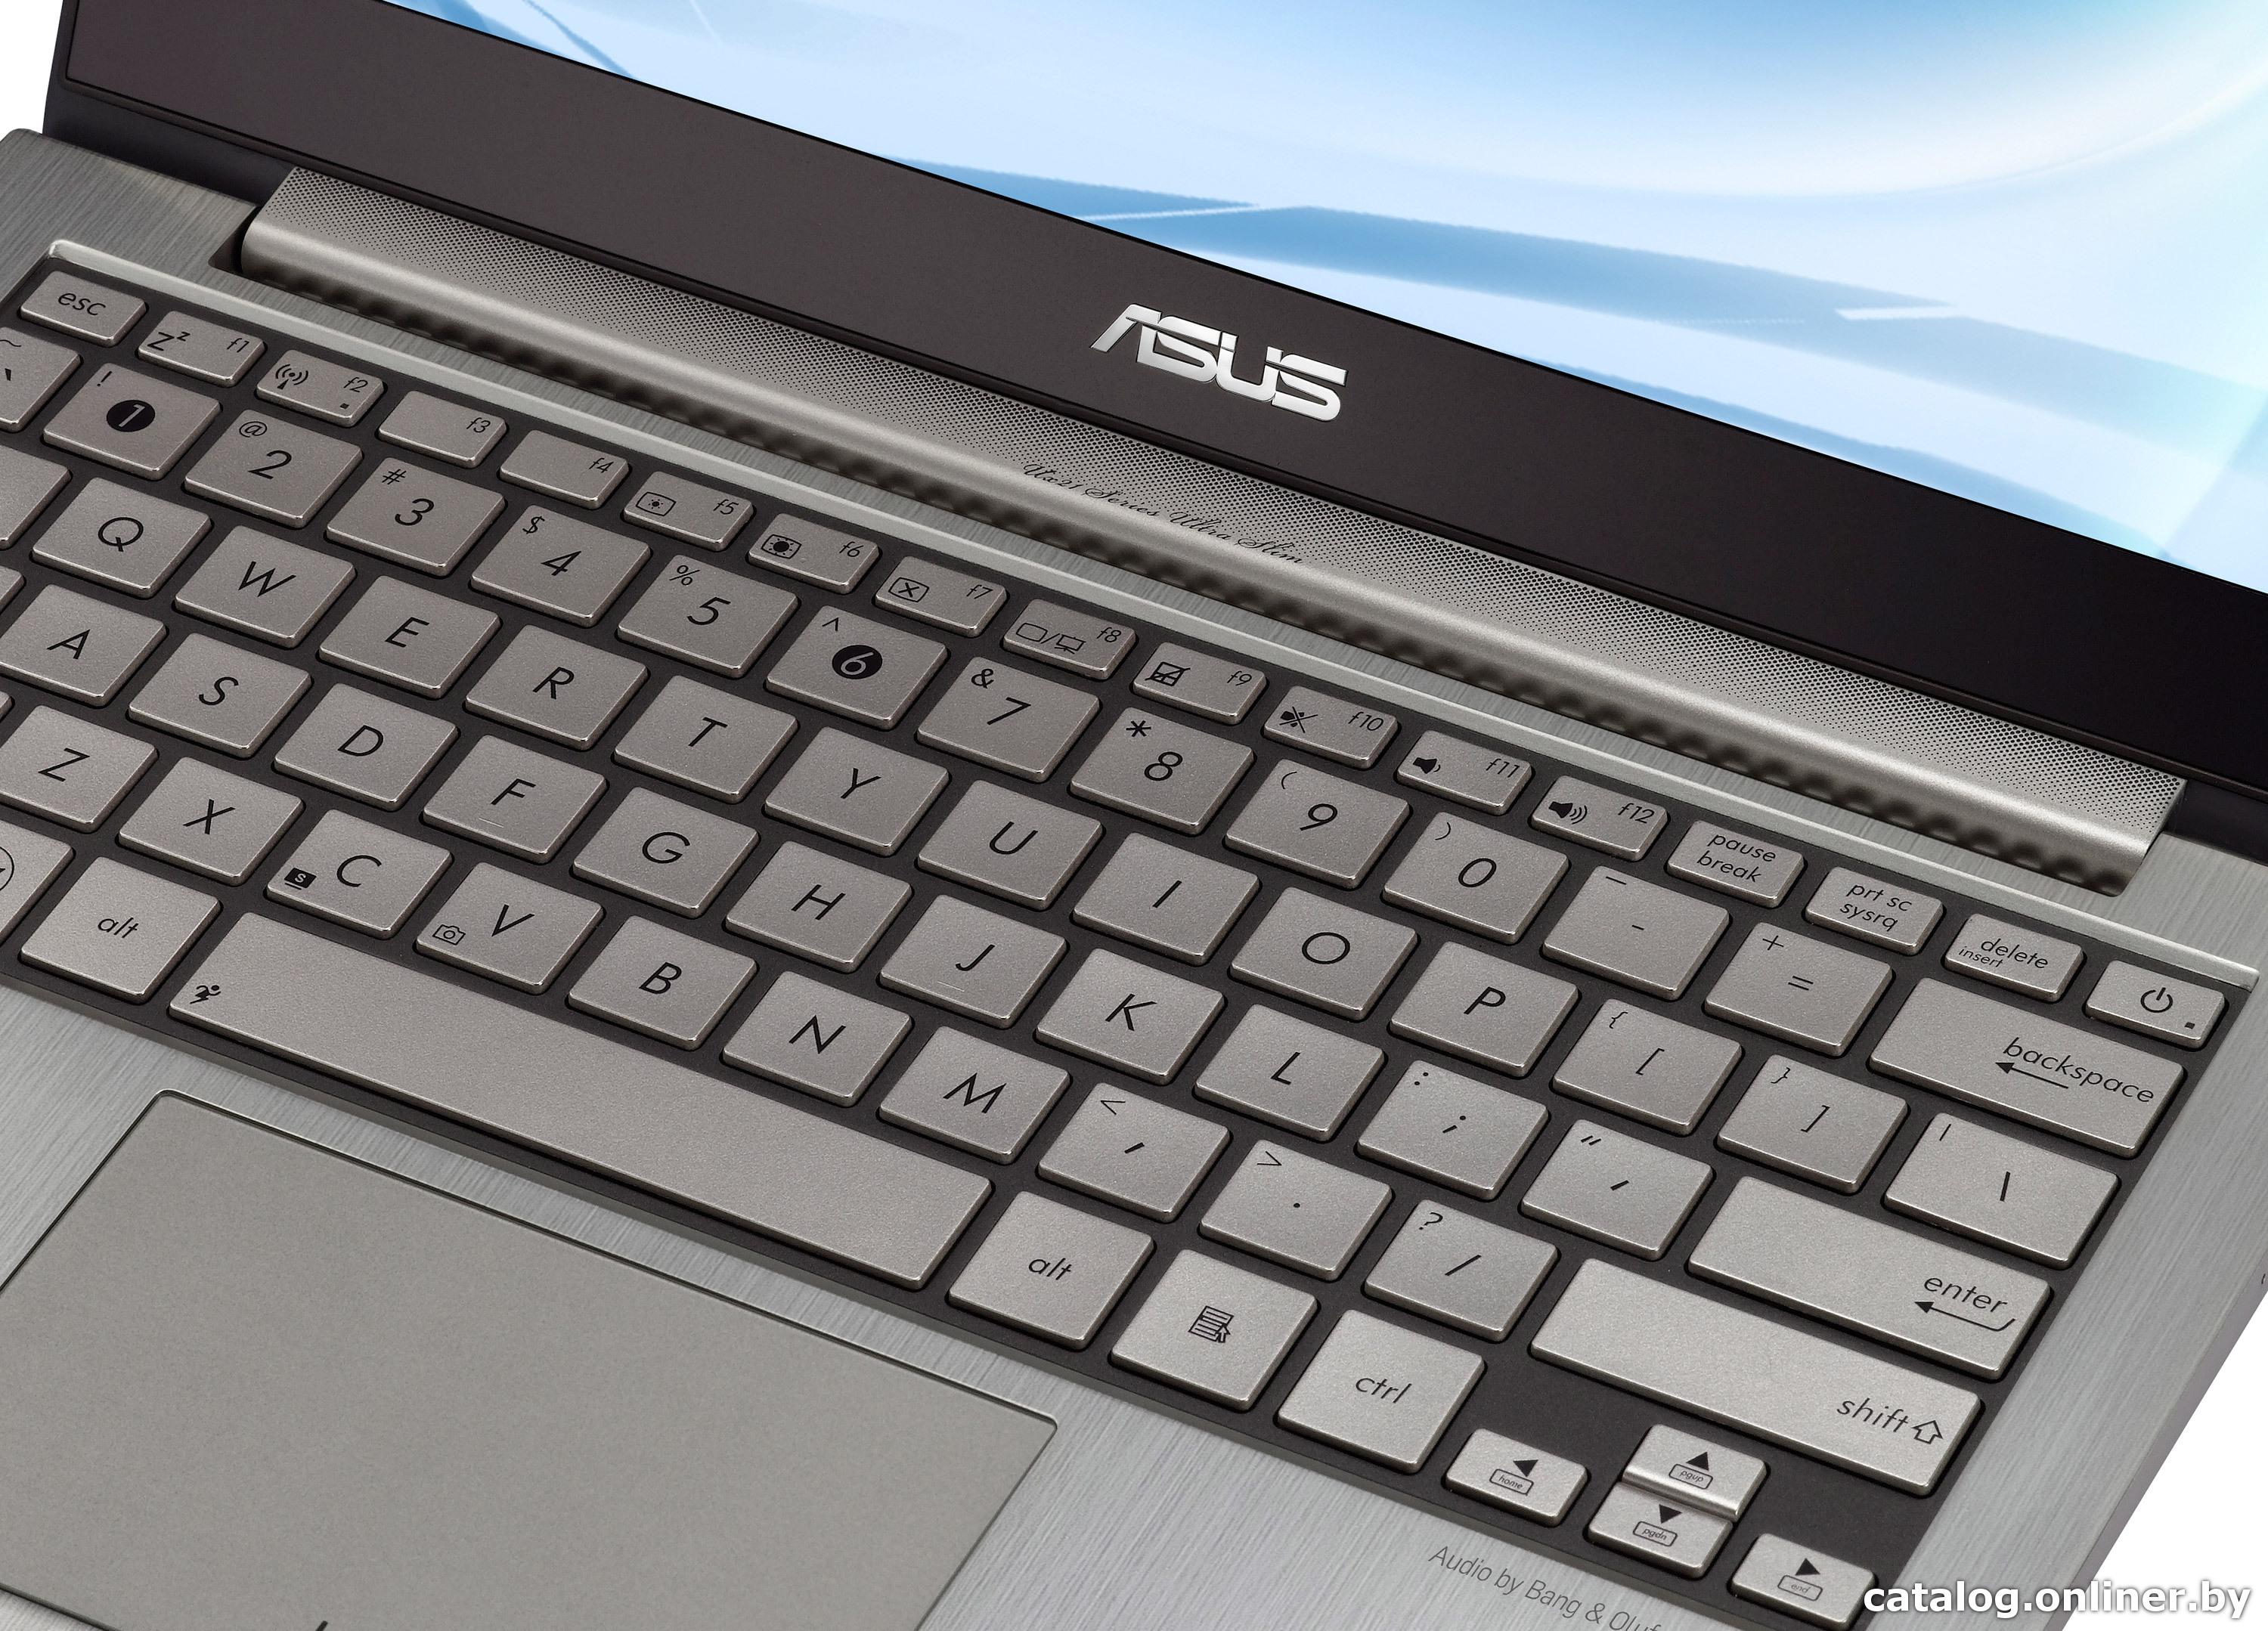 ASUS ZENBOOK UX21E USB 2.0 TO FAST ETHERNET ADAPTER WINDOWS 10 DOWNLOAD DRIVER